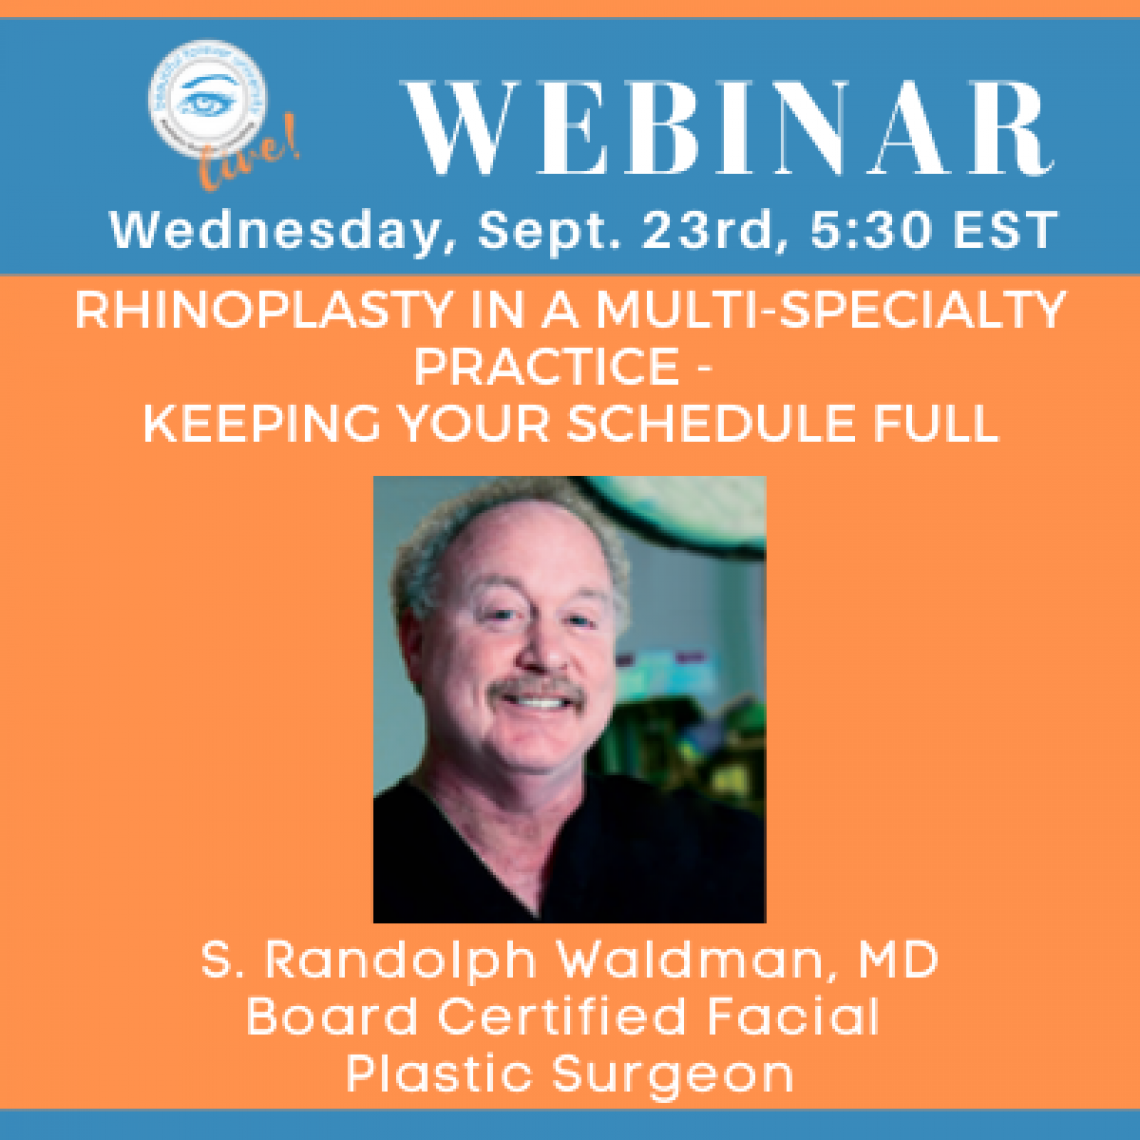 Rhinoplasty in a Multi-Specialty Practice - Keeping Your Schedule Full